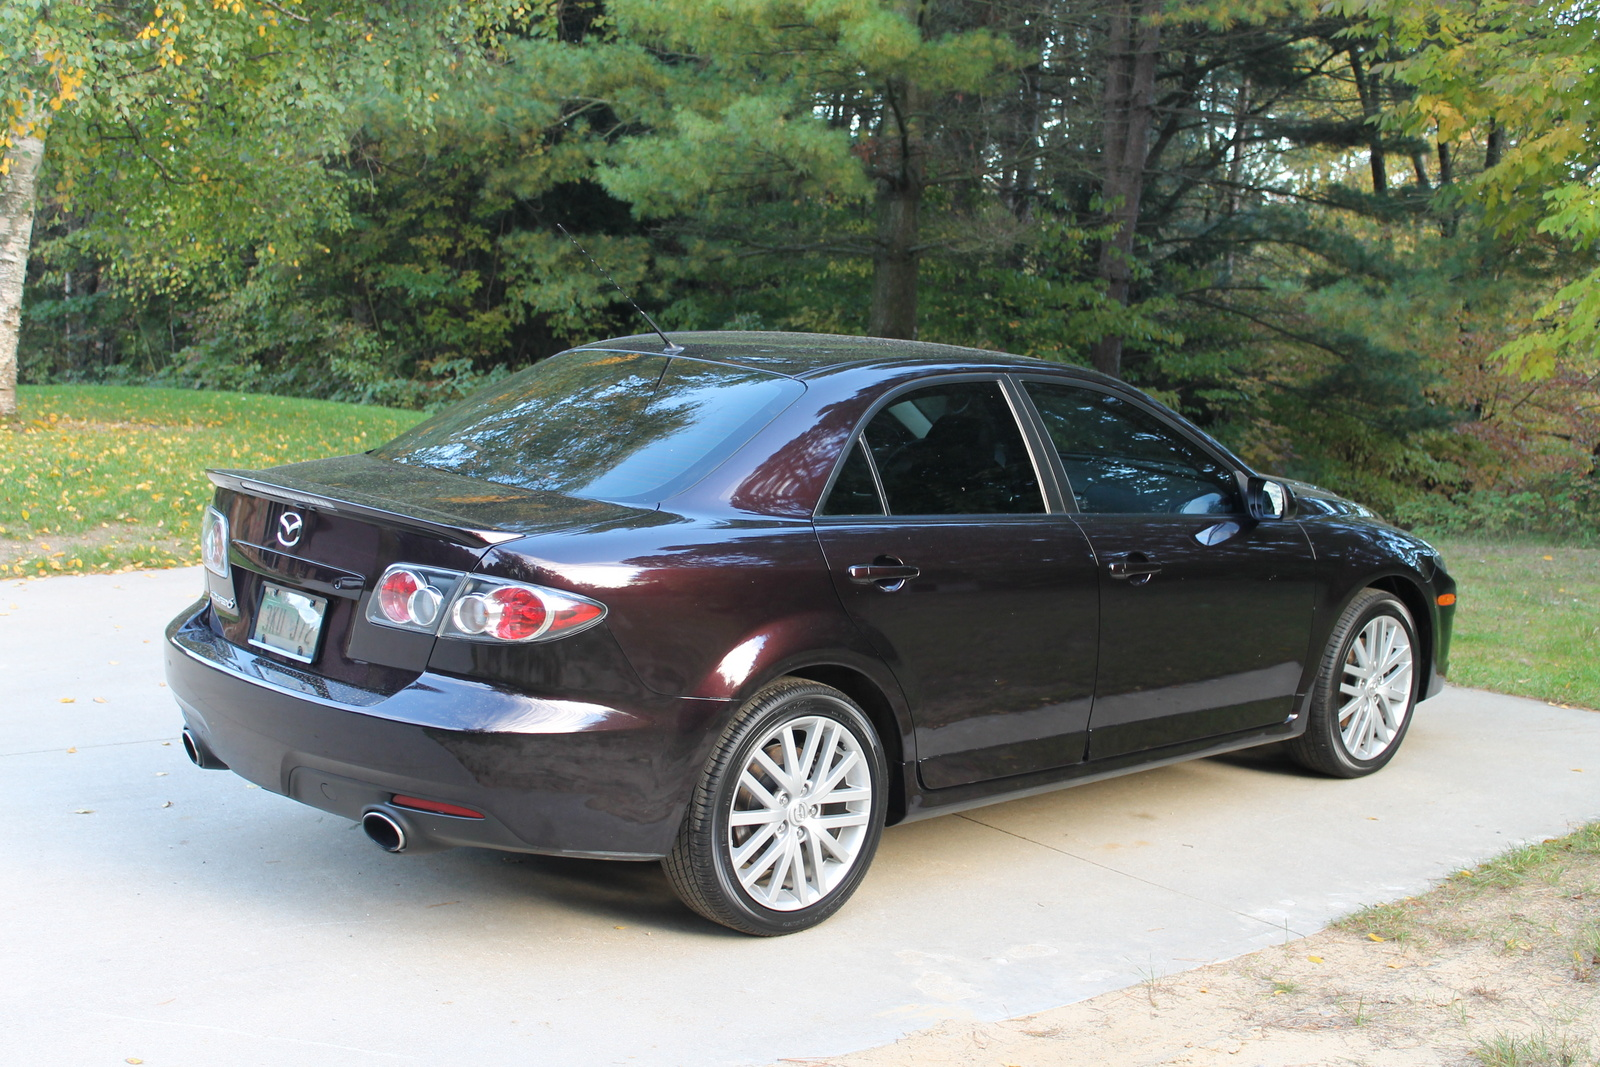 2006 mazda mazdaspeed6 pictures cargurus. Black Bedroom Furniture Sets. Home Design Ideas